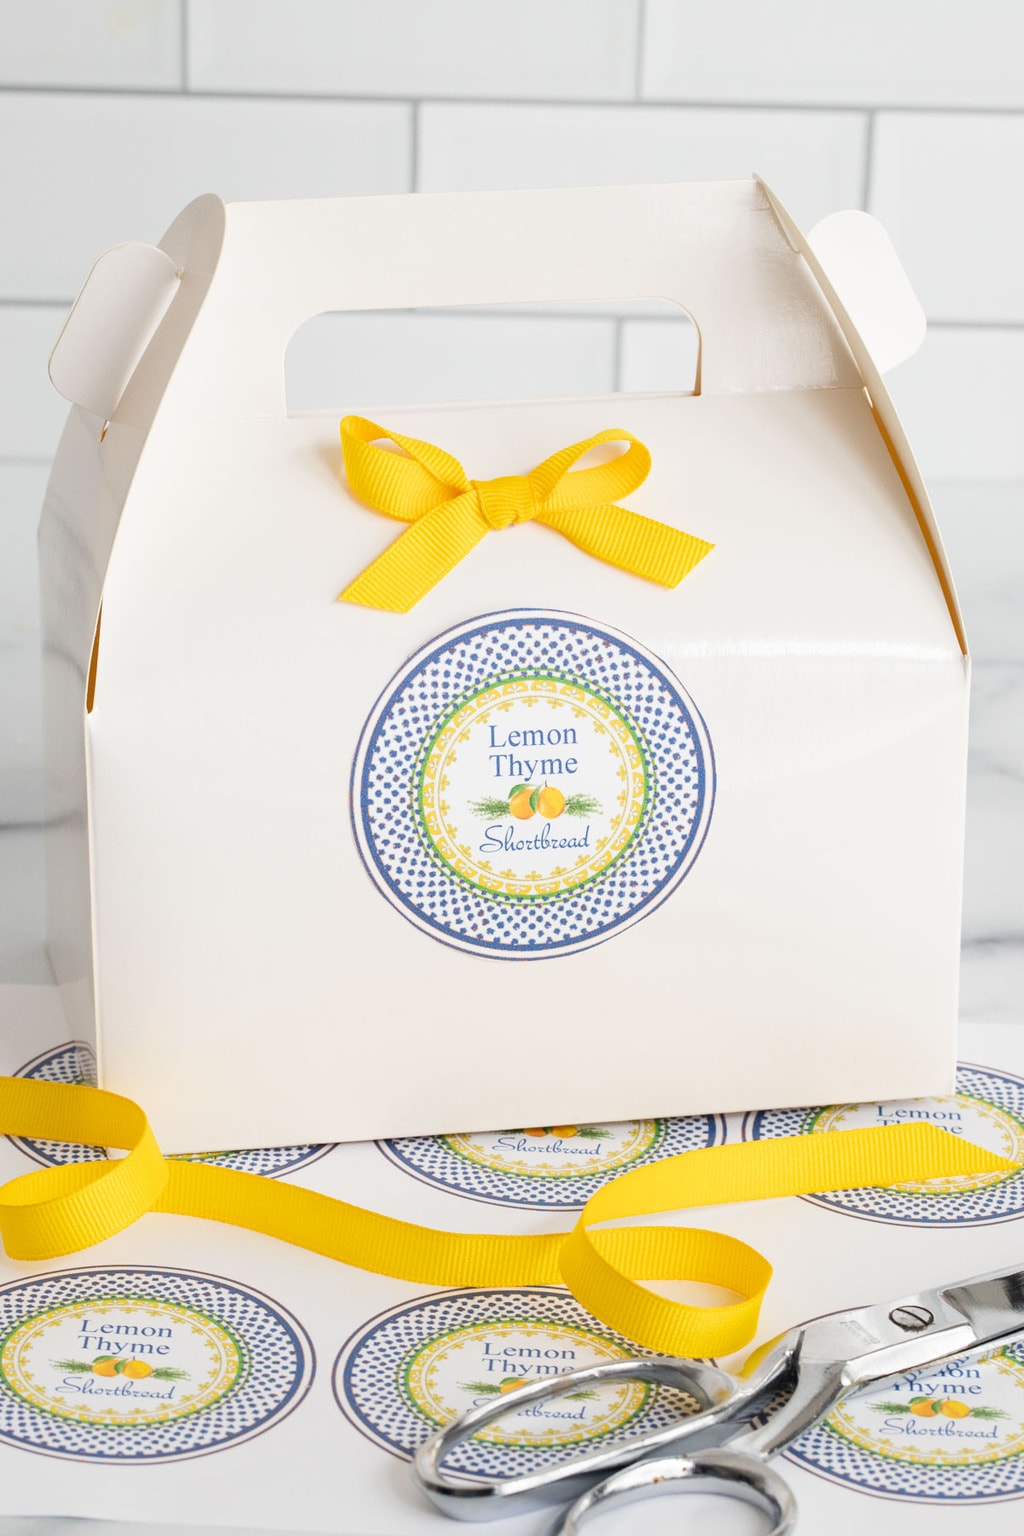 Vertical closeup photo of Lemon Thyme Shortbread custom labels for gift giving.